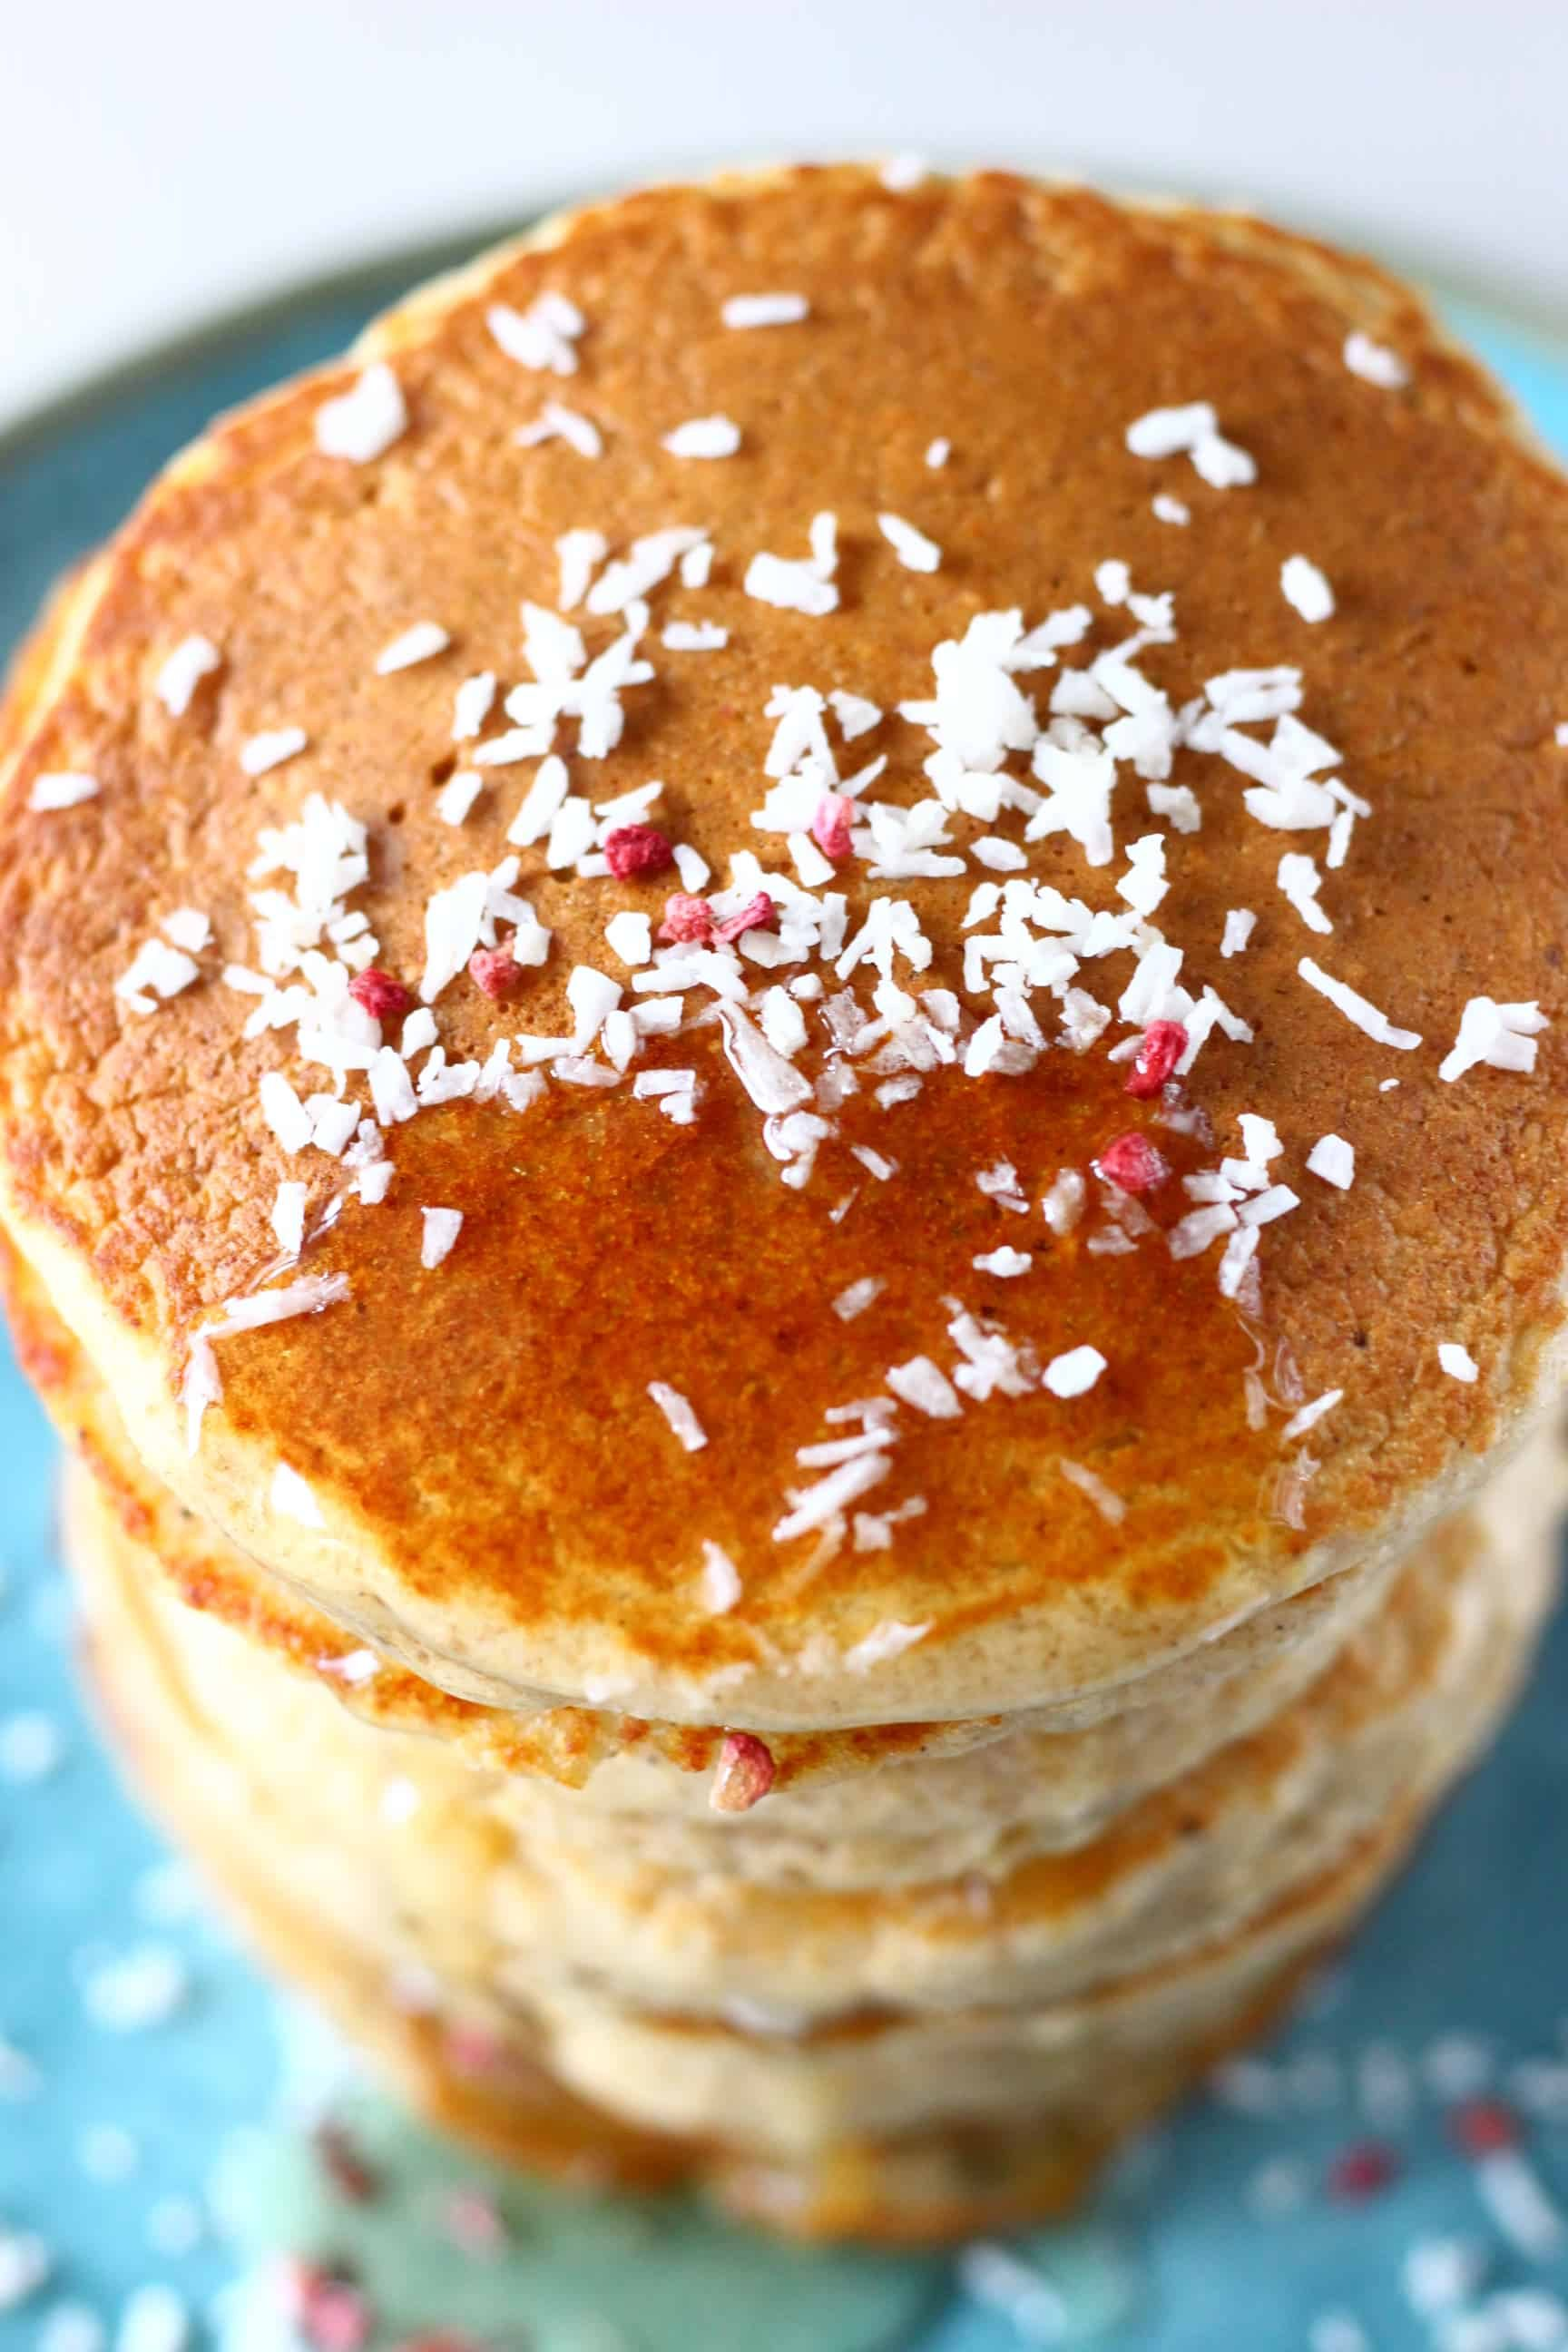 A stack of oat flour pancakes topped with desiccated coconut and syrup on a blue plate